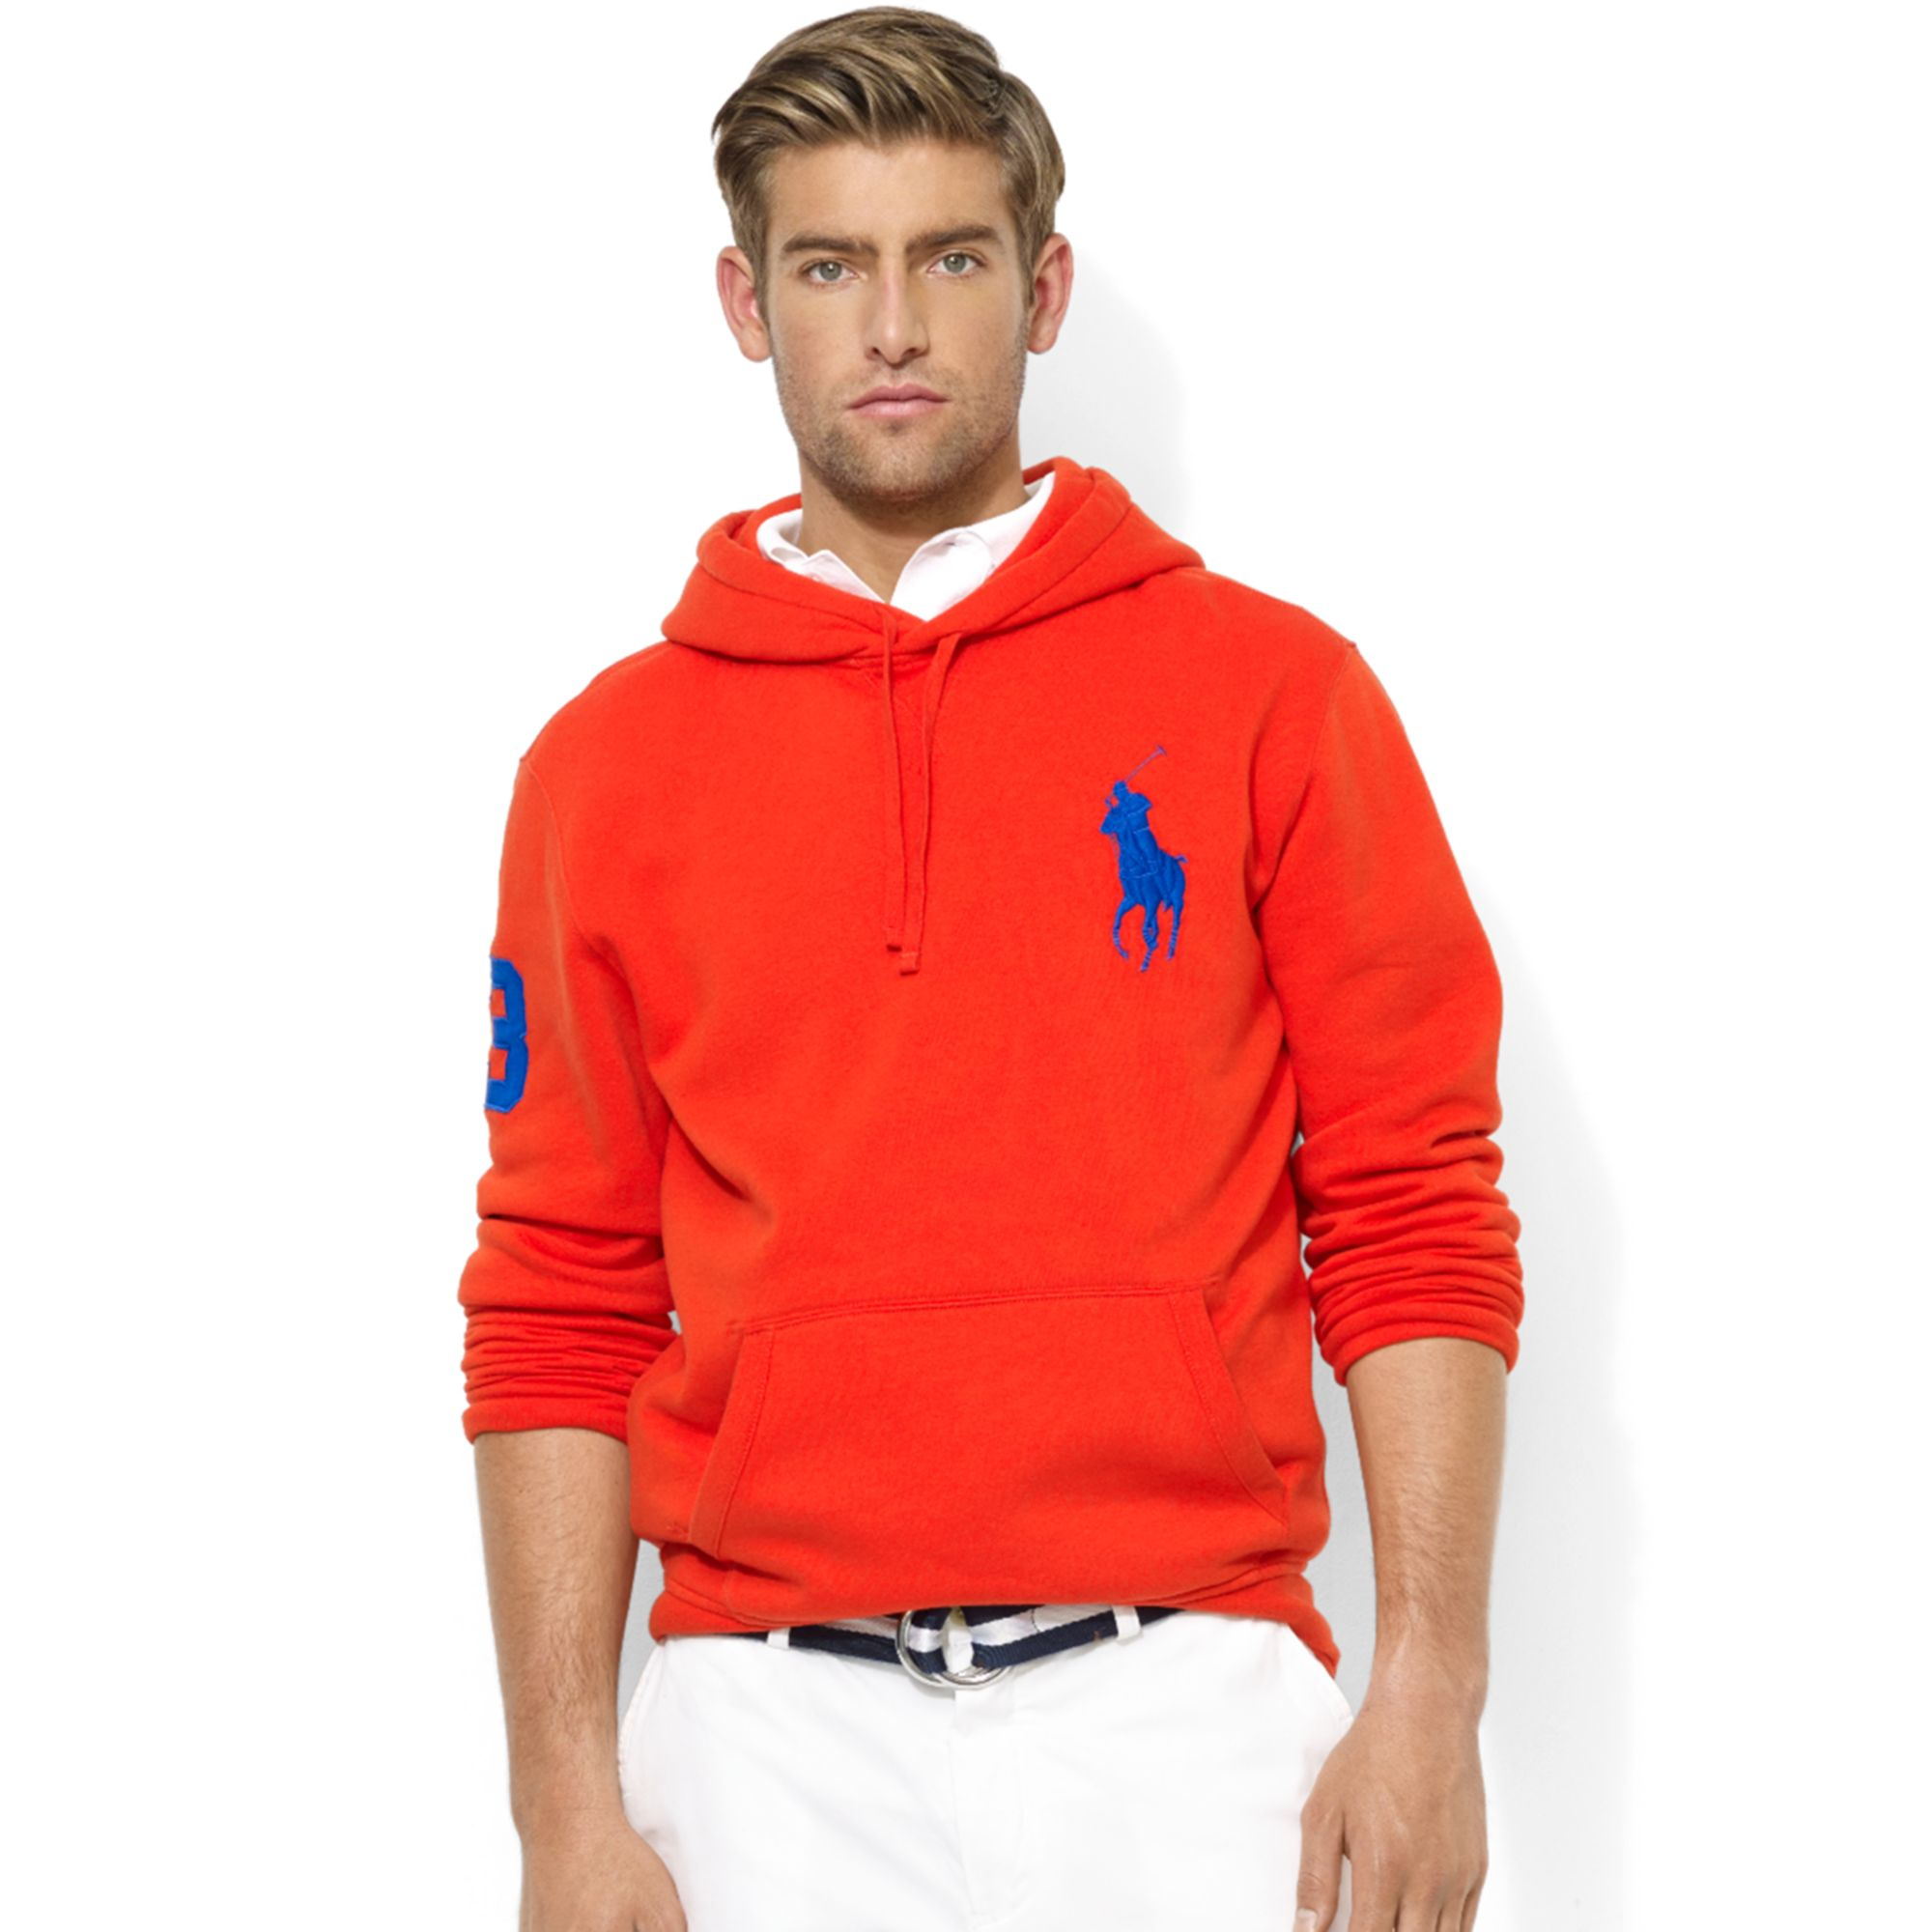 marein polo ralph lauren red sweatshirt. Black Bedroom Furniture Sets. Home Design Ideas